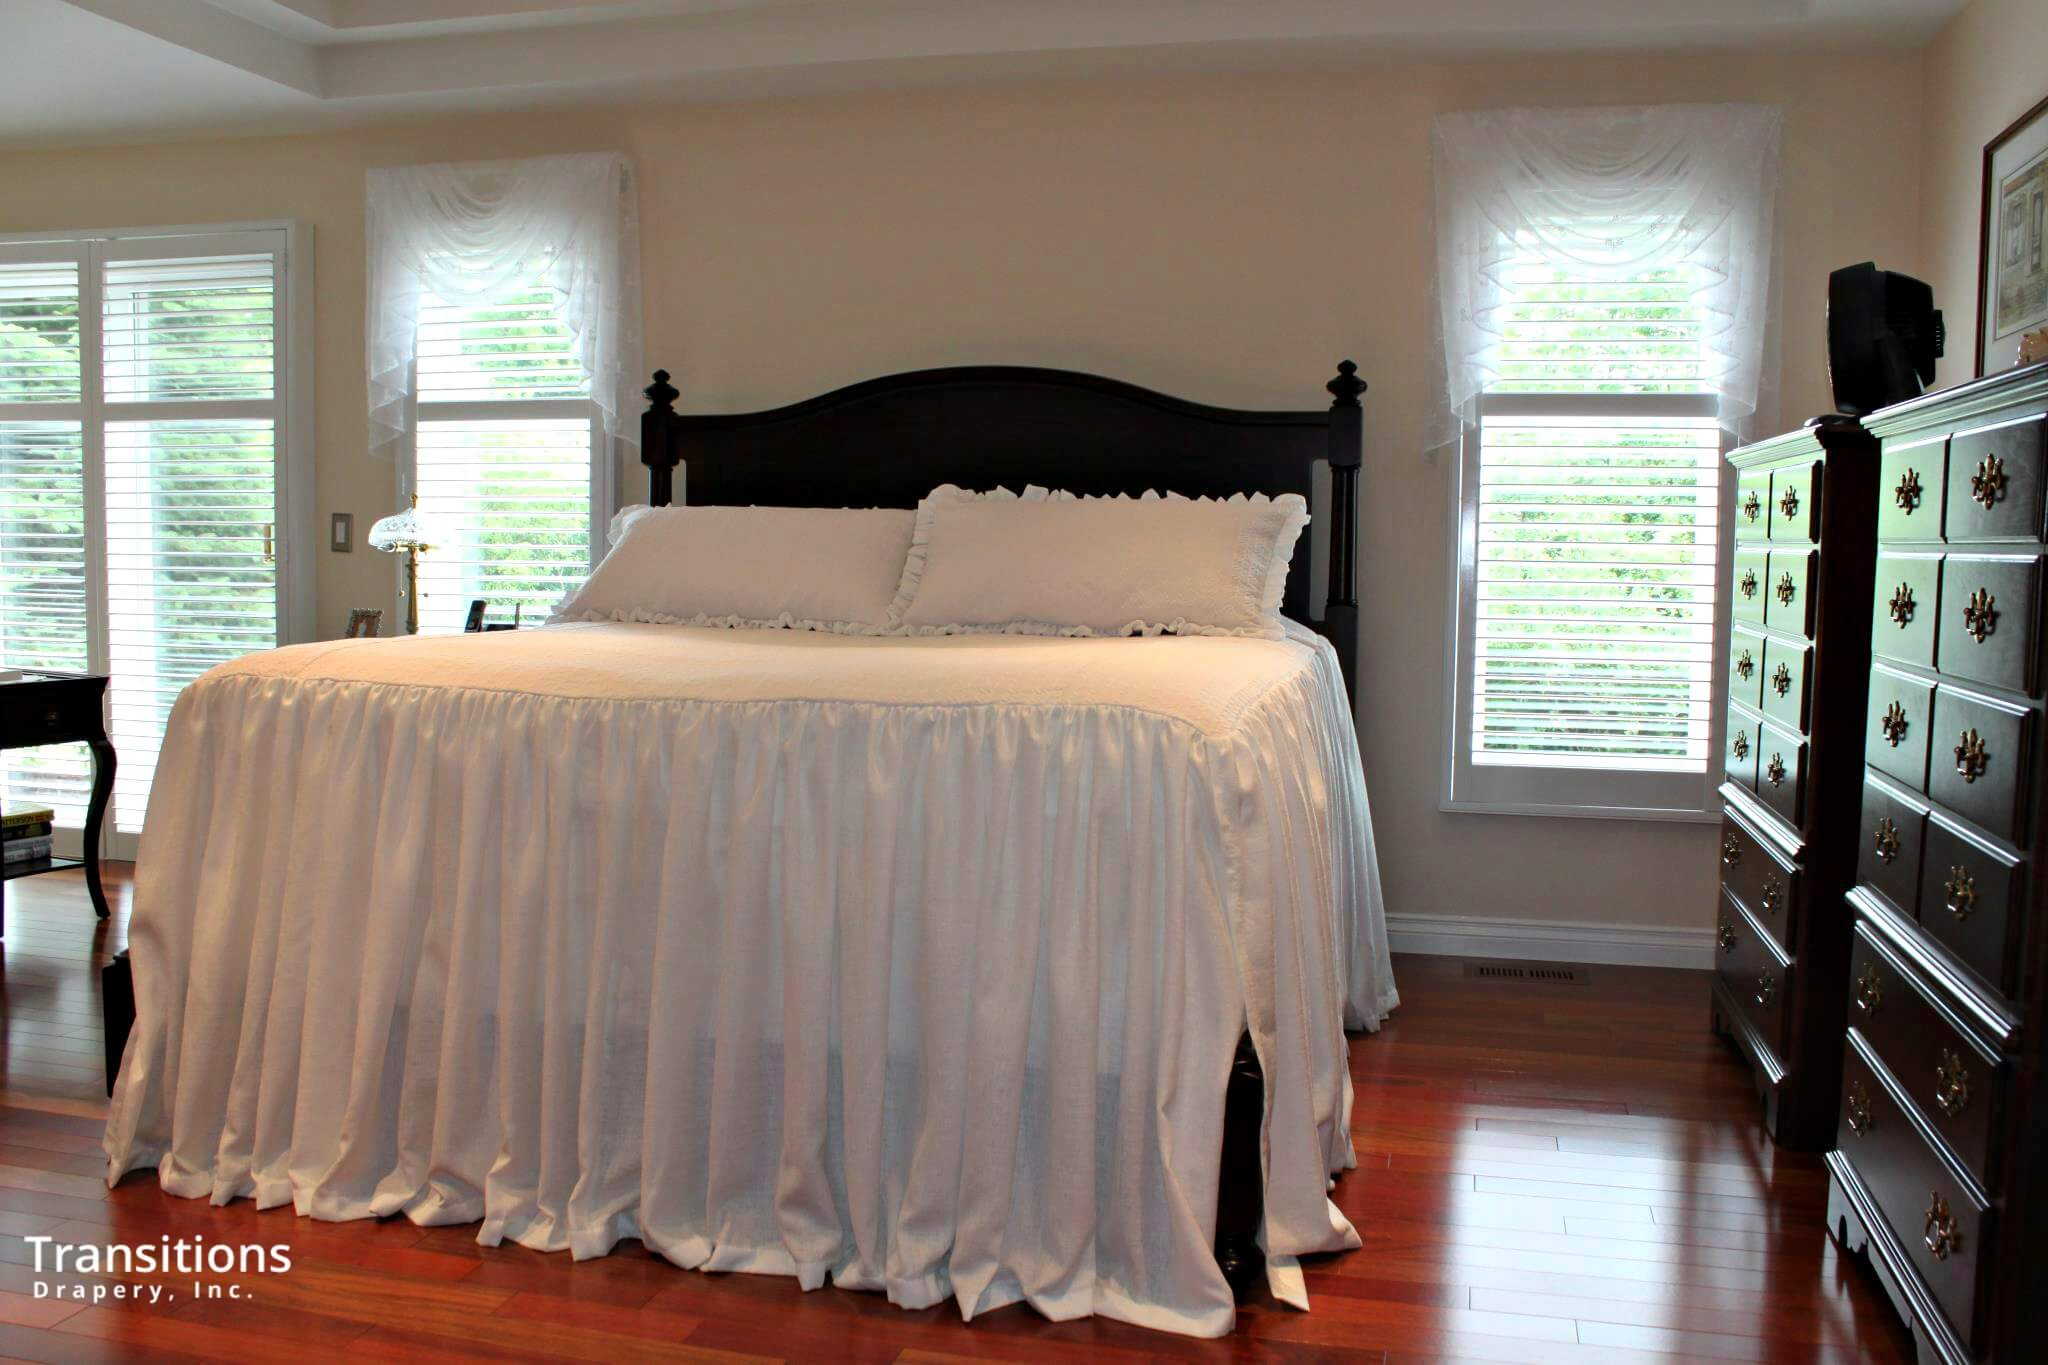 Bedding and soft valances